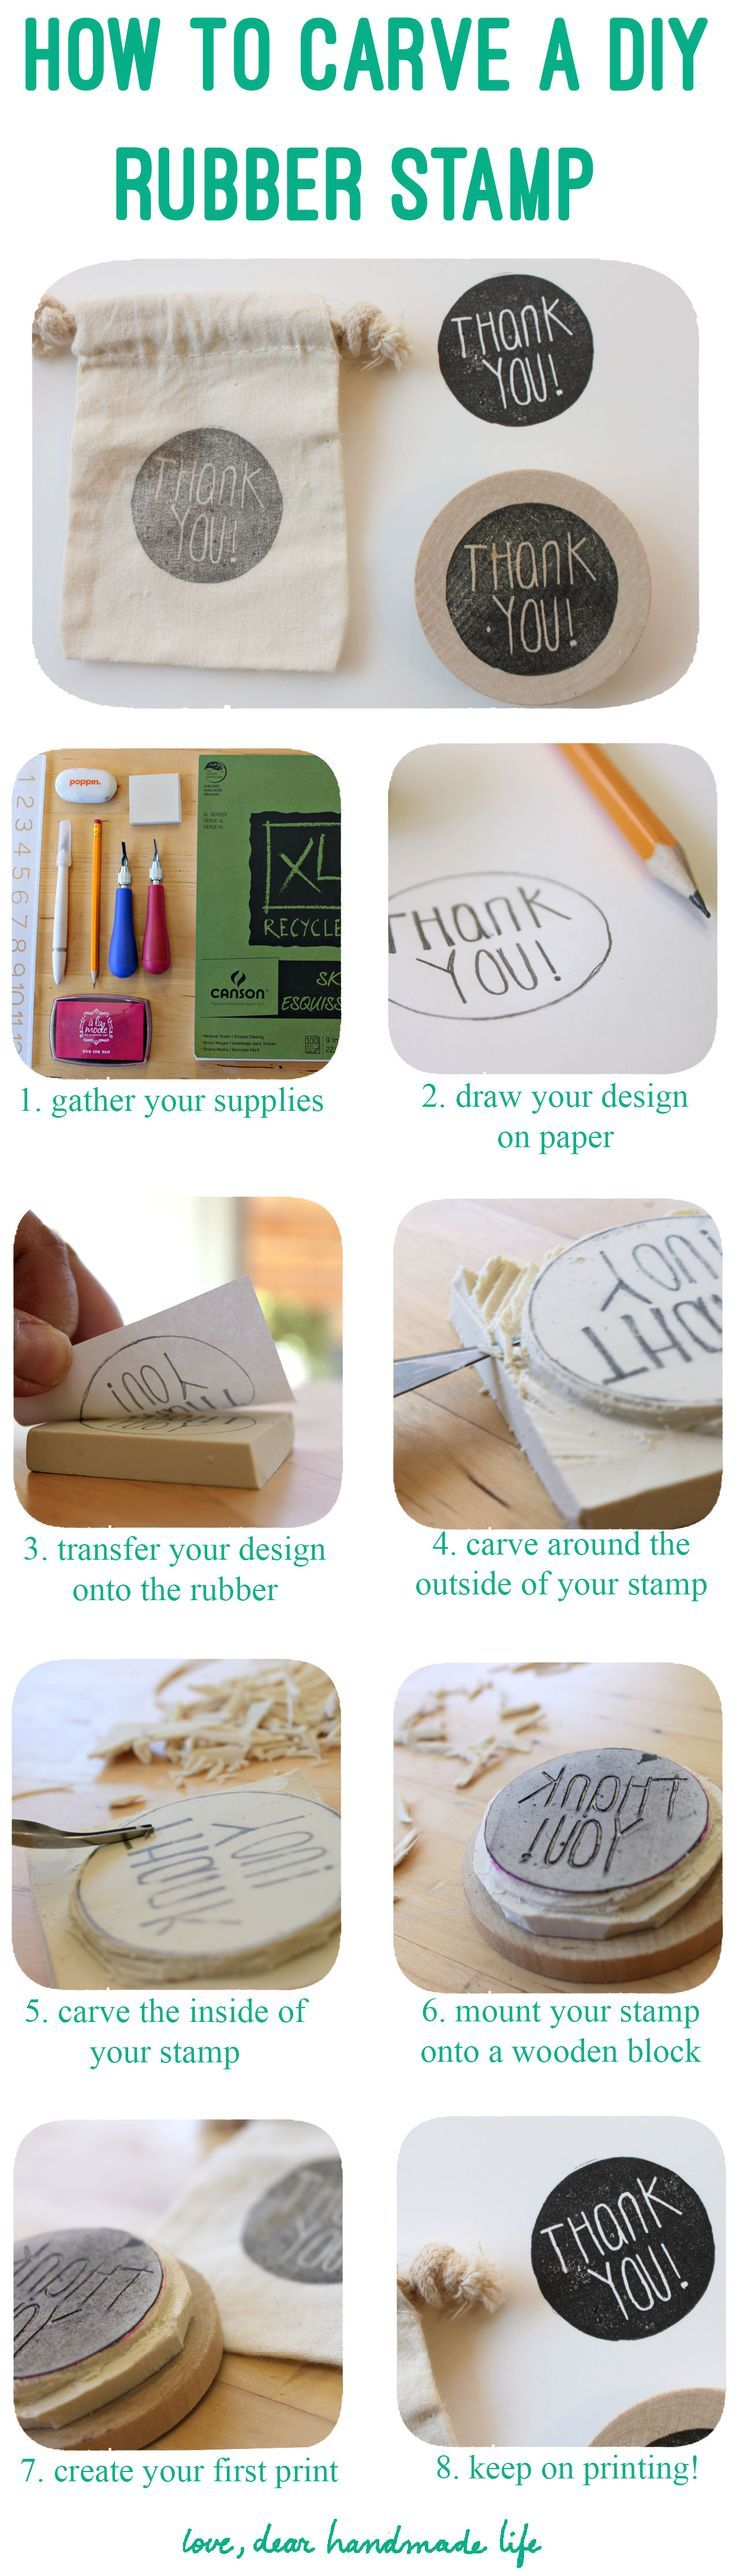 Best images about art tutorials for stamp carving on